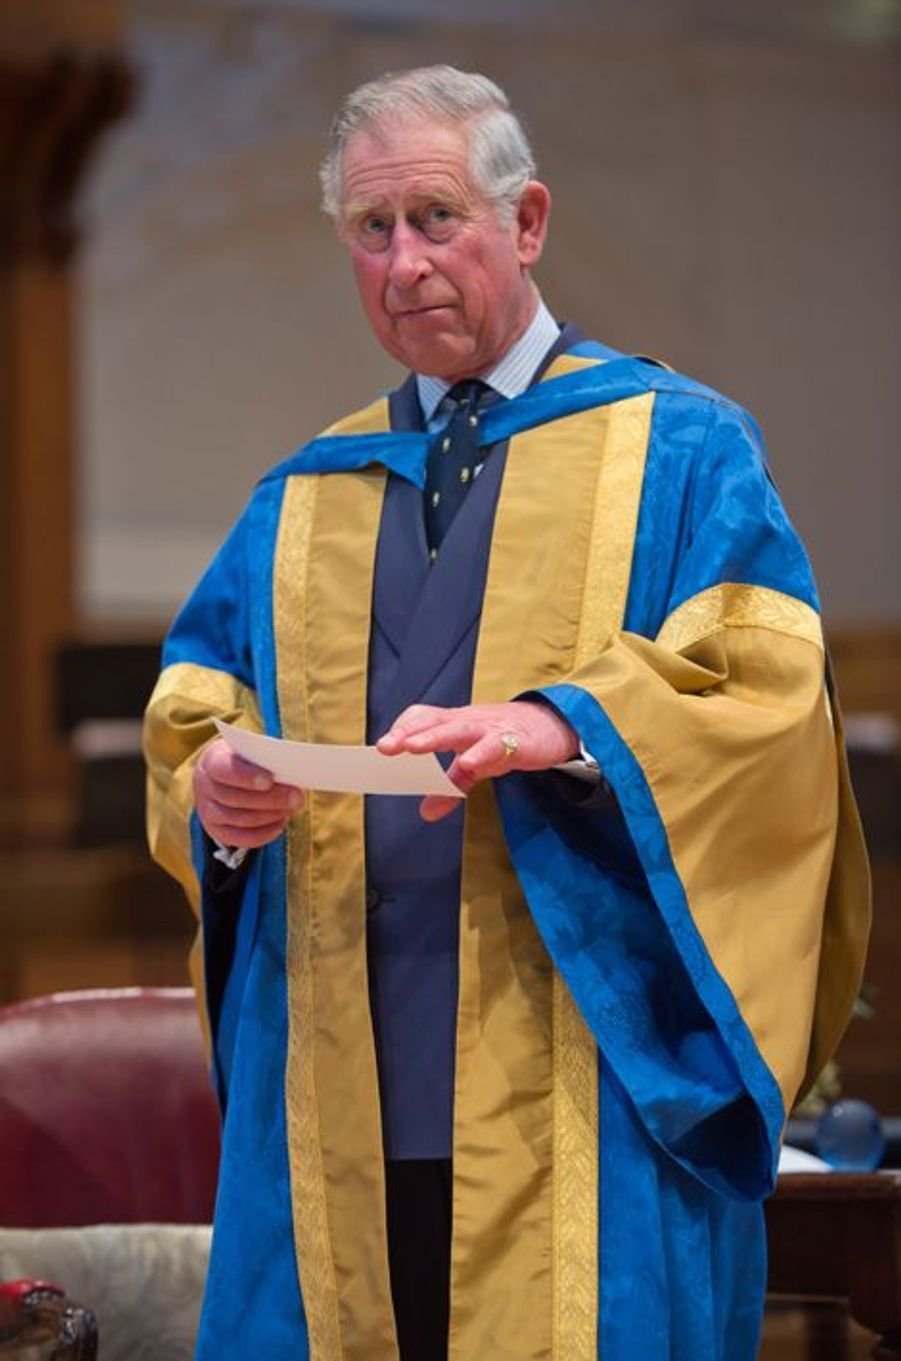 Le prince Charles au Royal College of Music à Londres, le 12 mars 2015